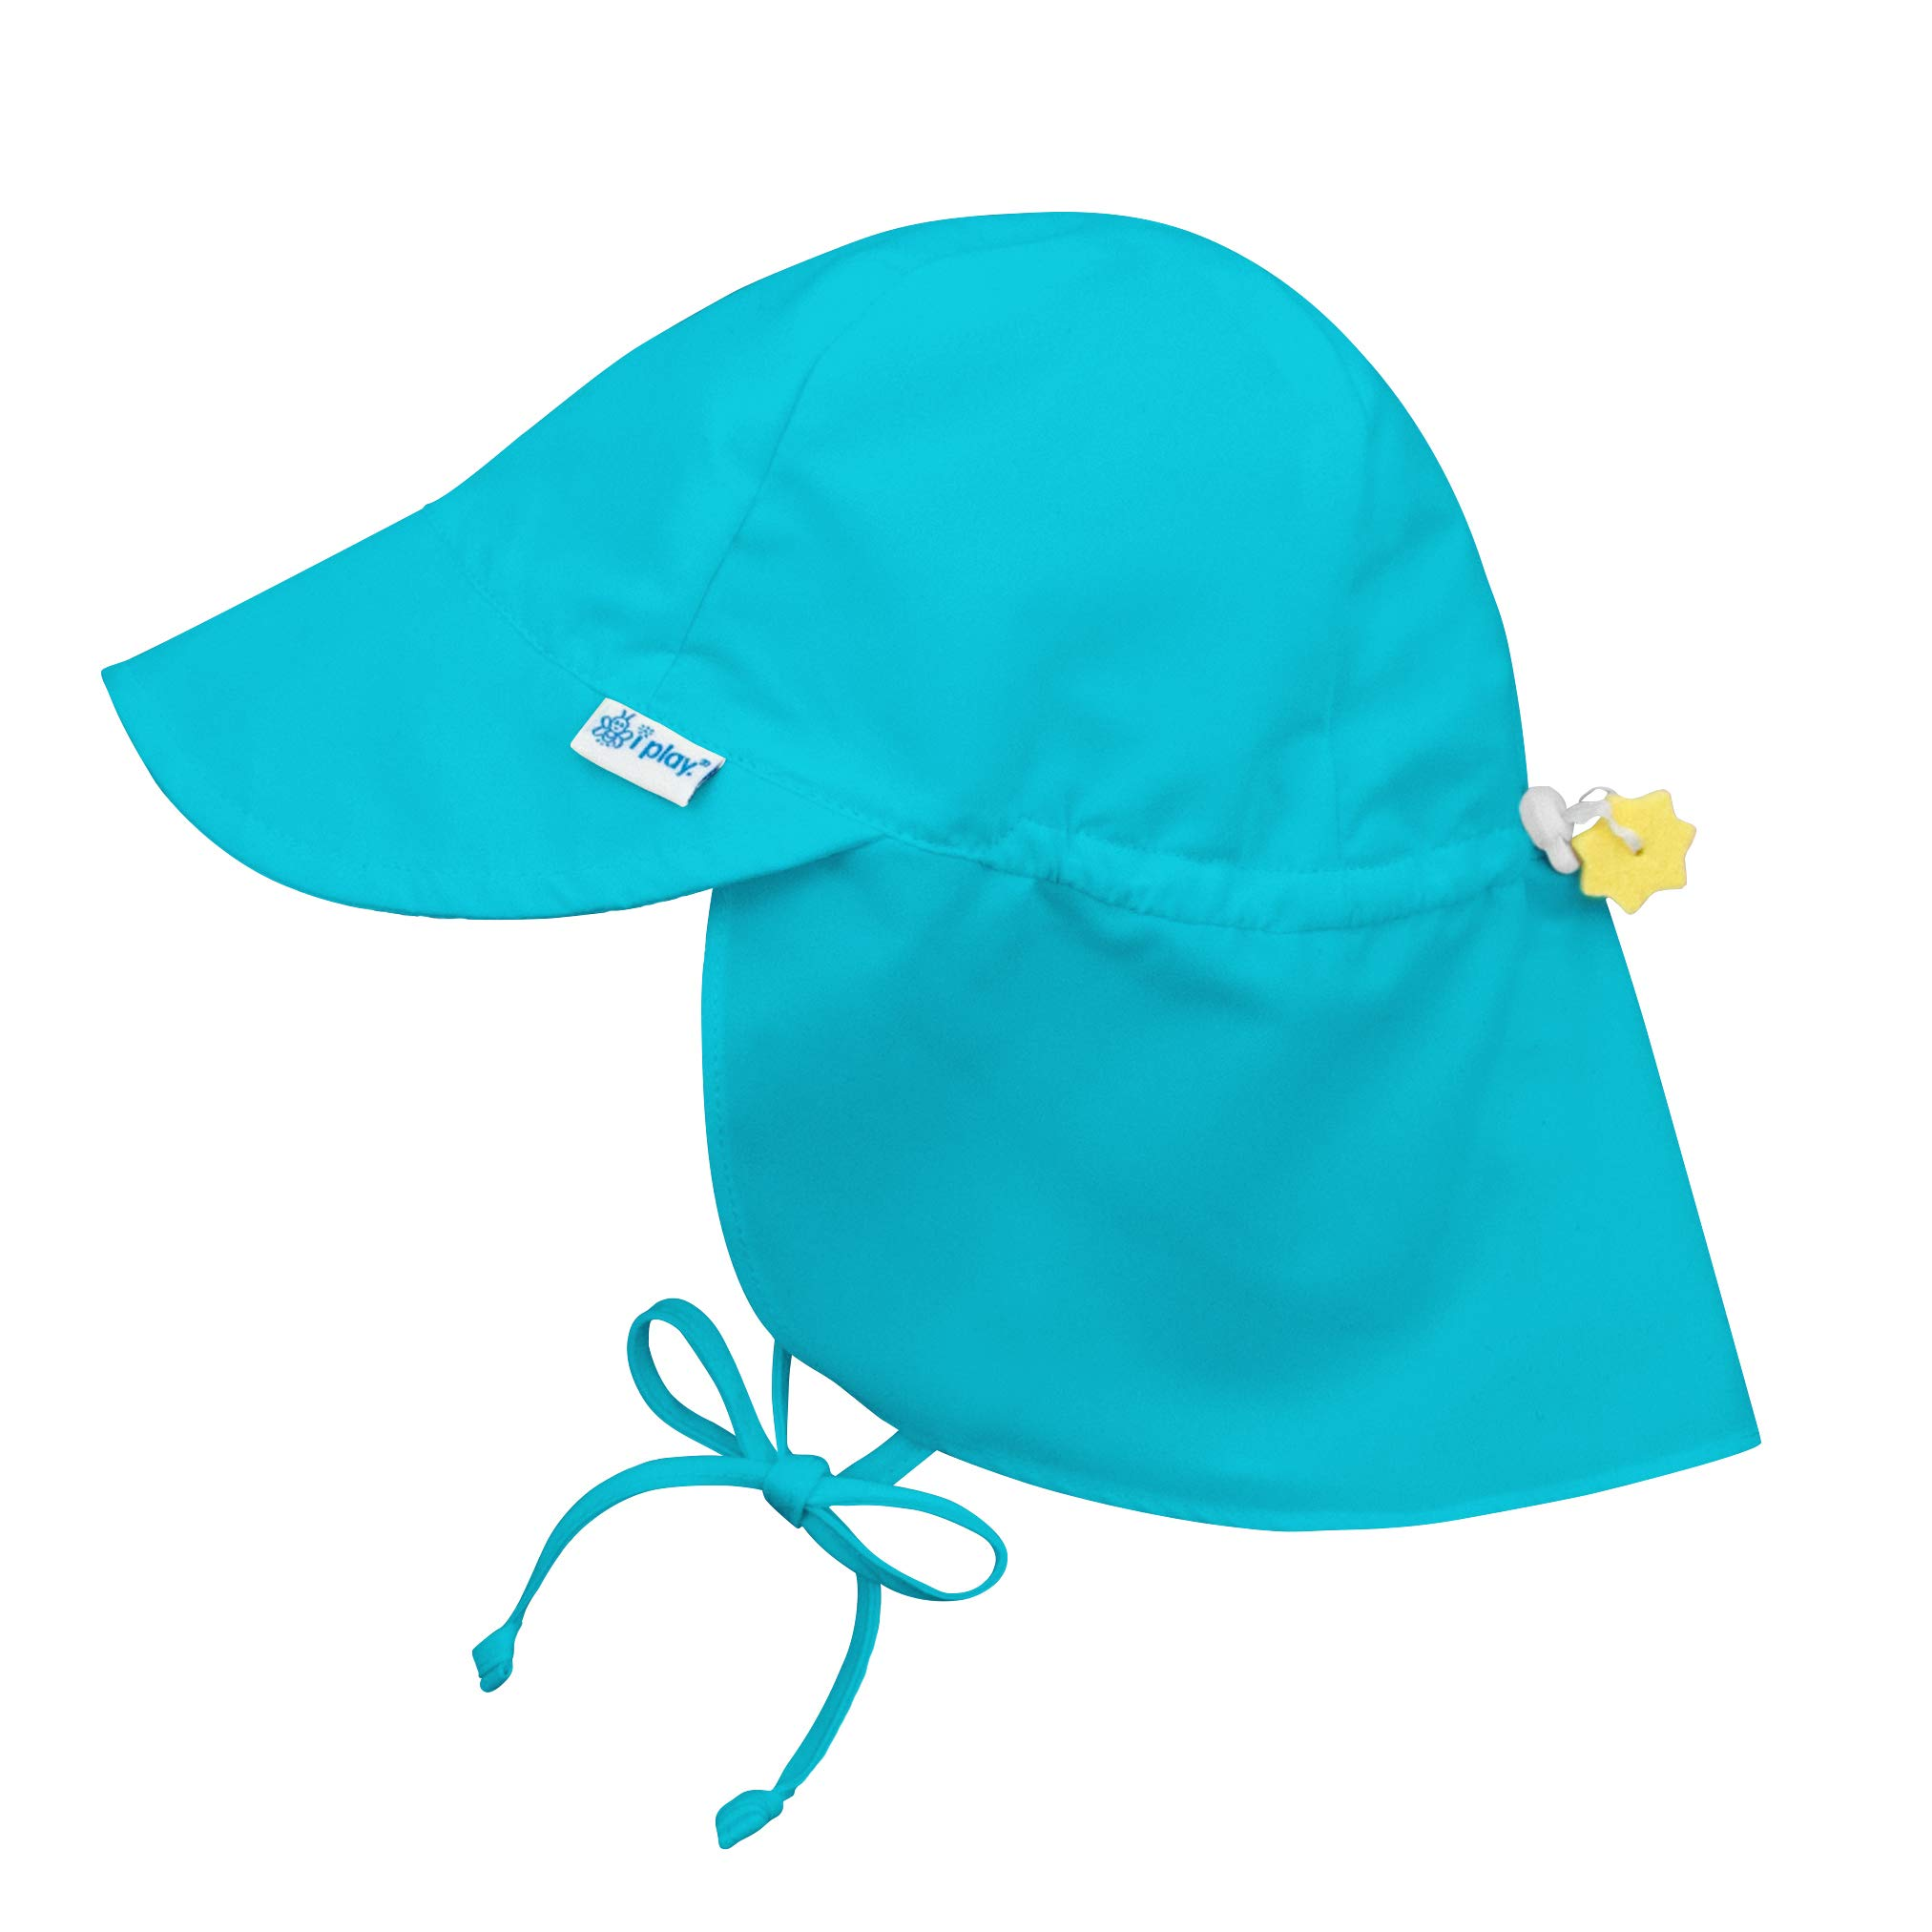 i play neck Flap Sun Protection HatUPF 50 all-day sun protection for head